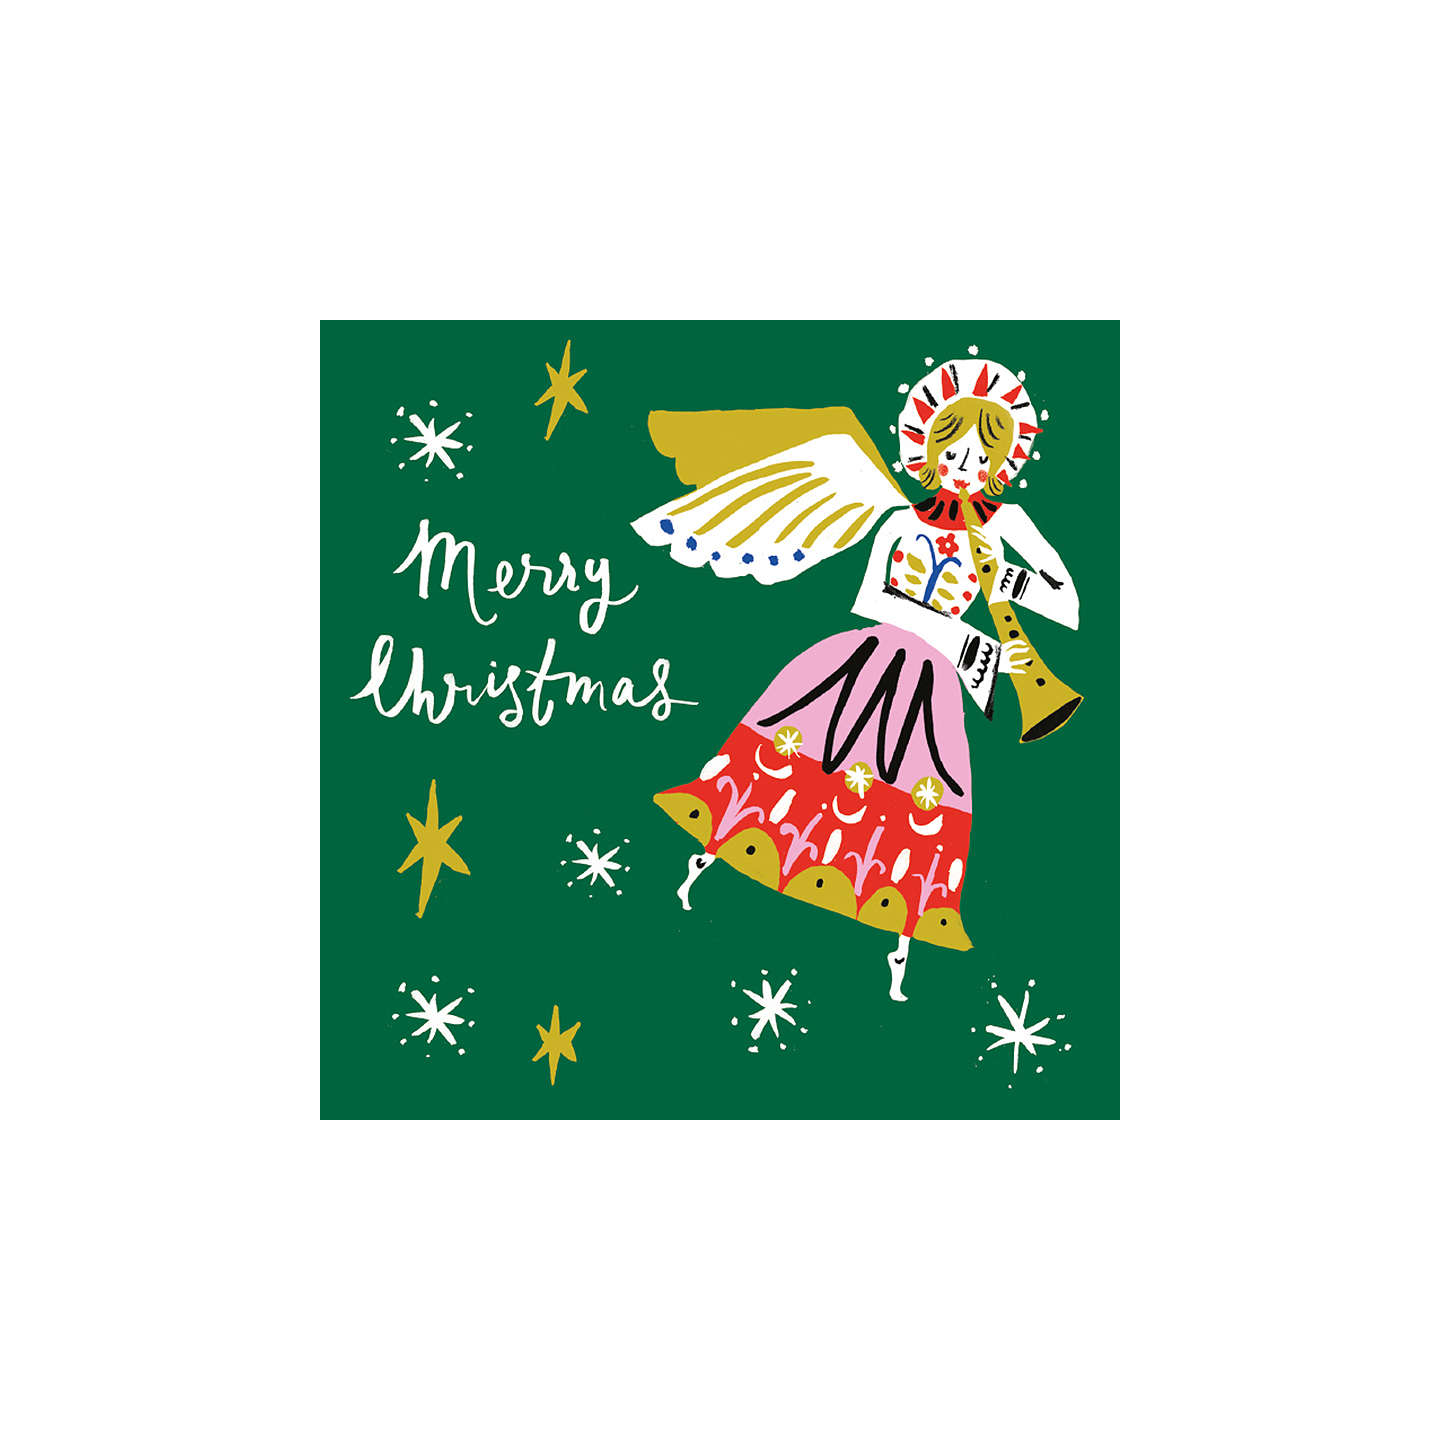 Buymuseums And Galleries Christmas Journey Charity Christmas Cards, Assorted, Pack